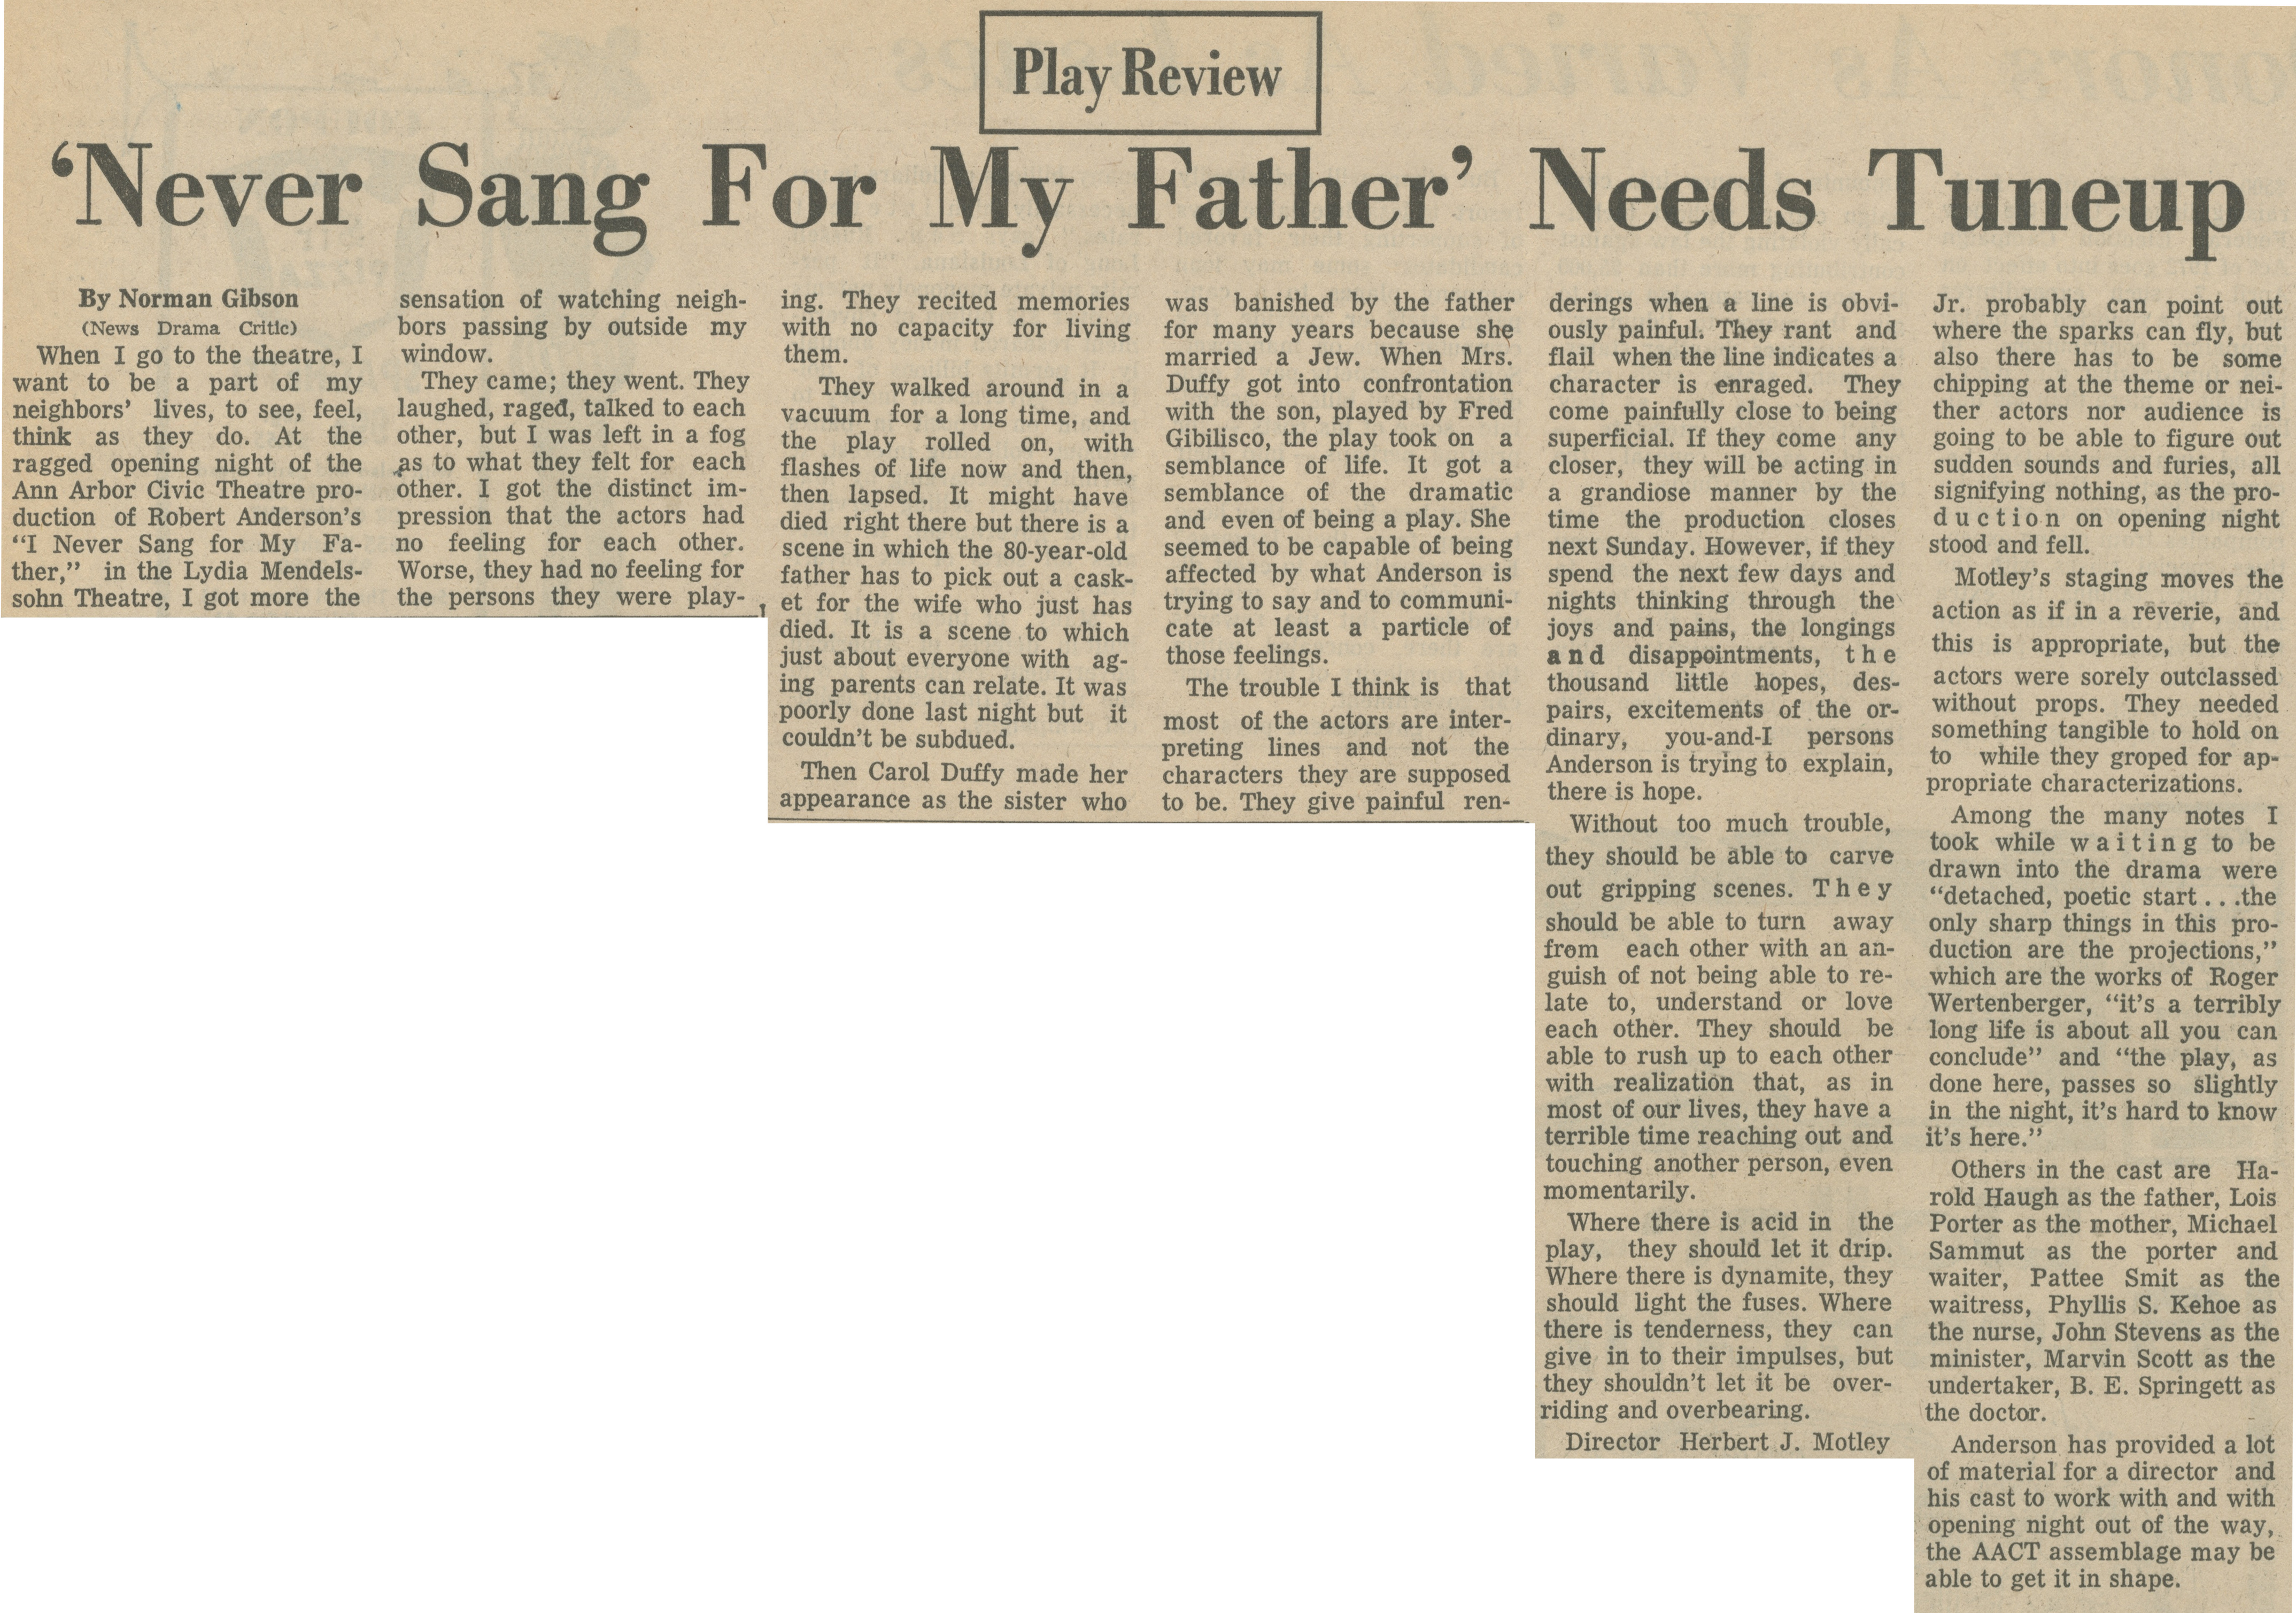 'Never Sang For My Father' Needs Tuneup image